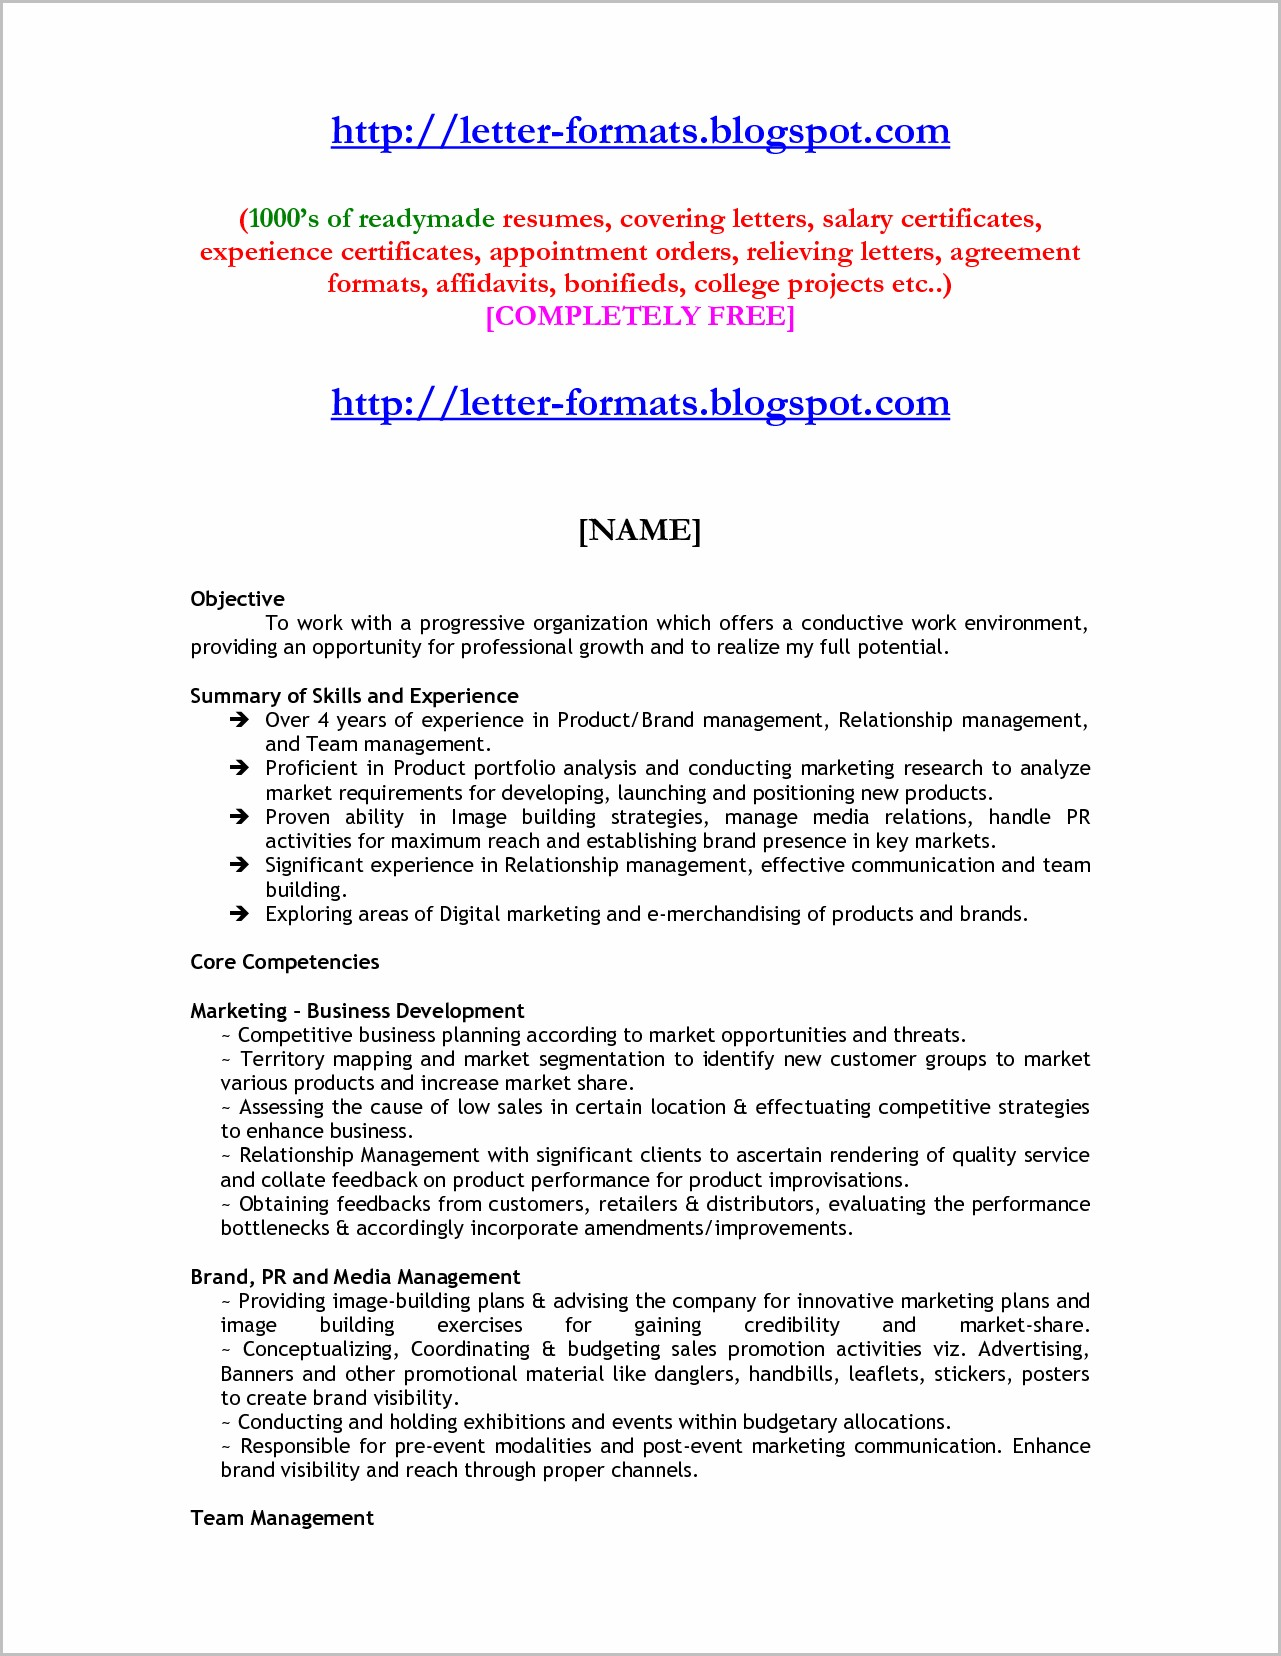 Resume Cover Letter Samples For Mba Freshers